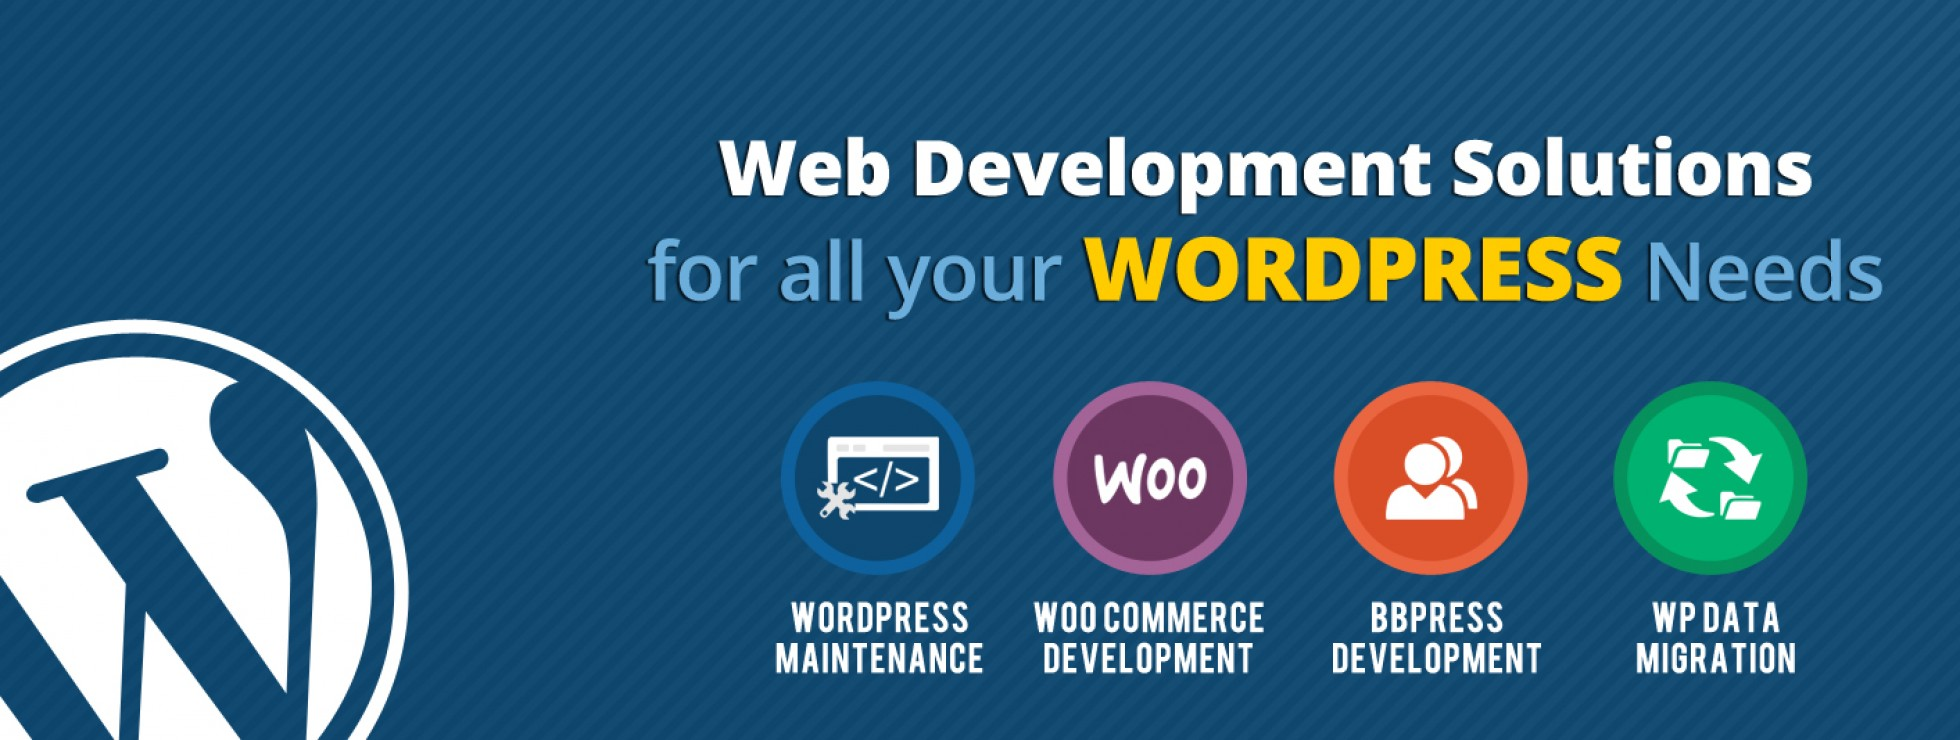 Wordpress web development services and code issues fixing